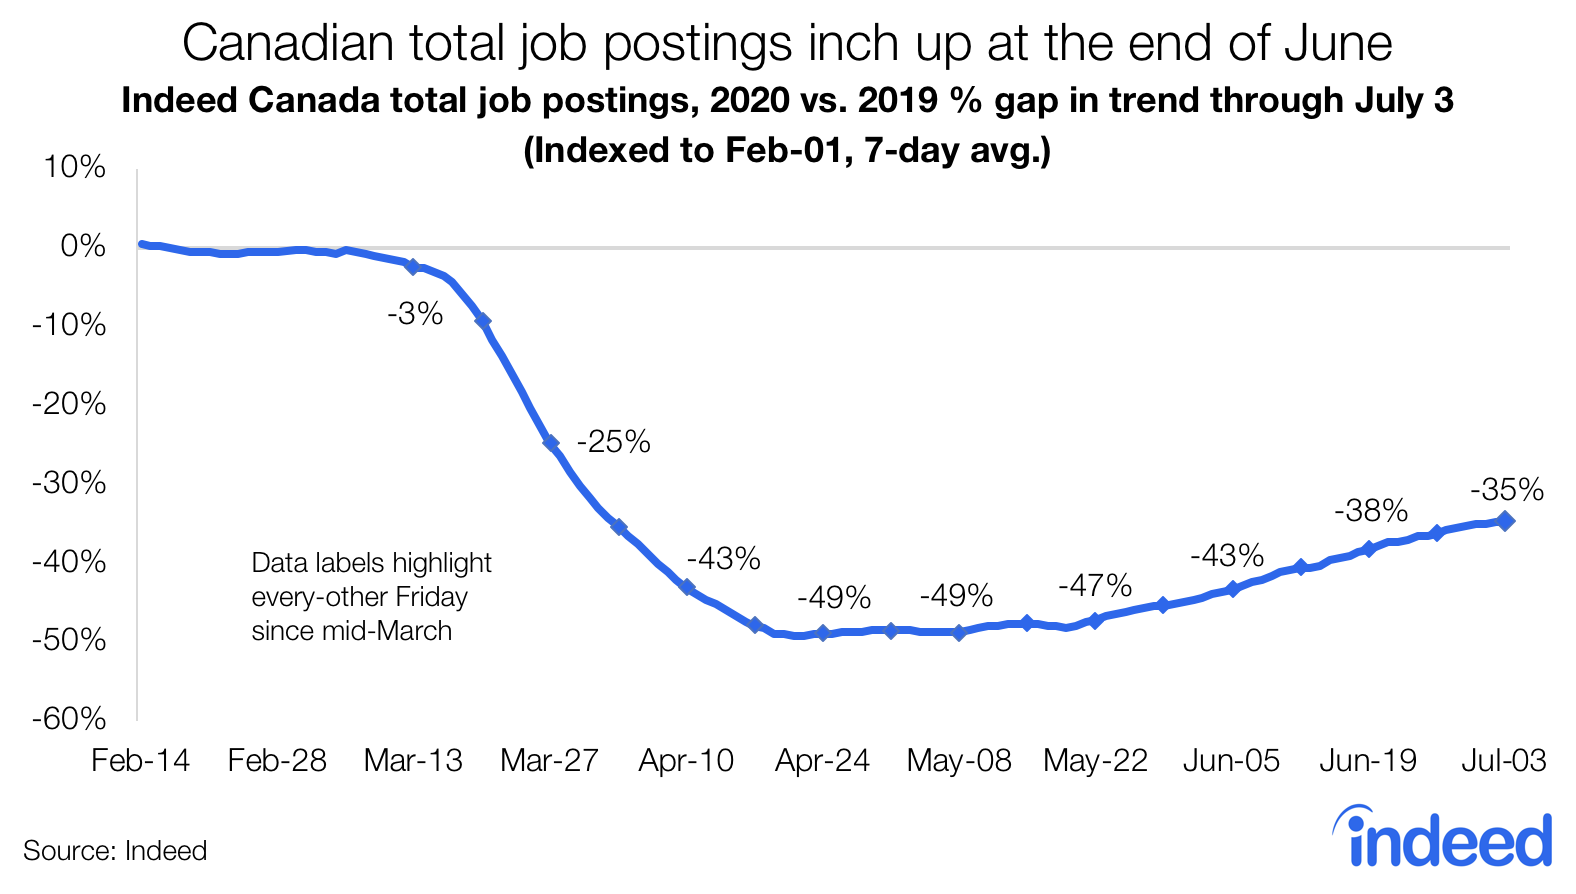 Canadian total job postings inch up at the end of June